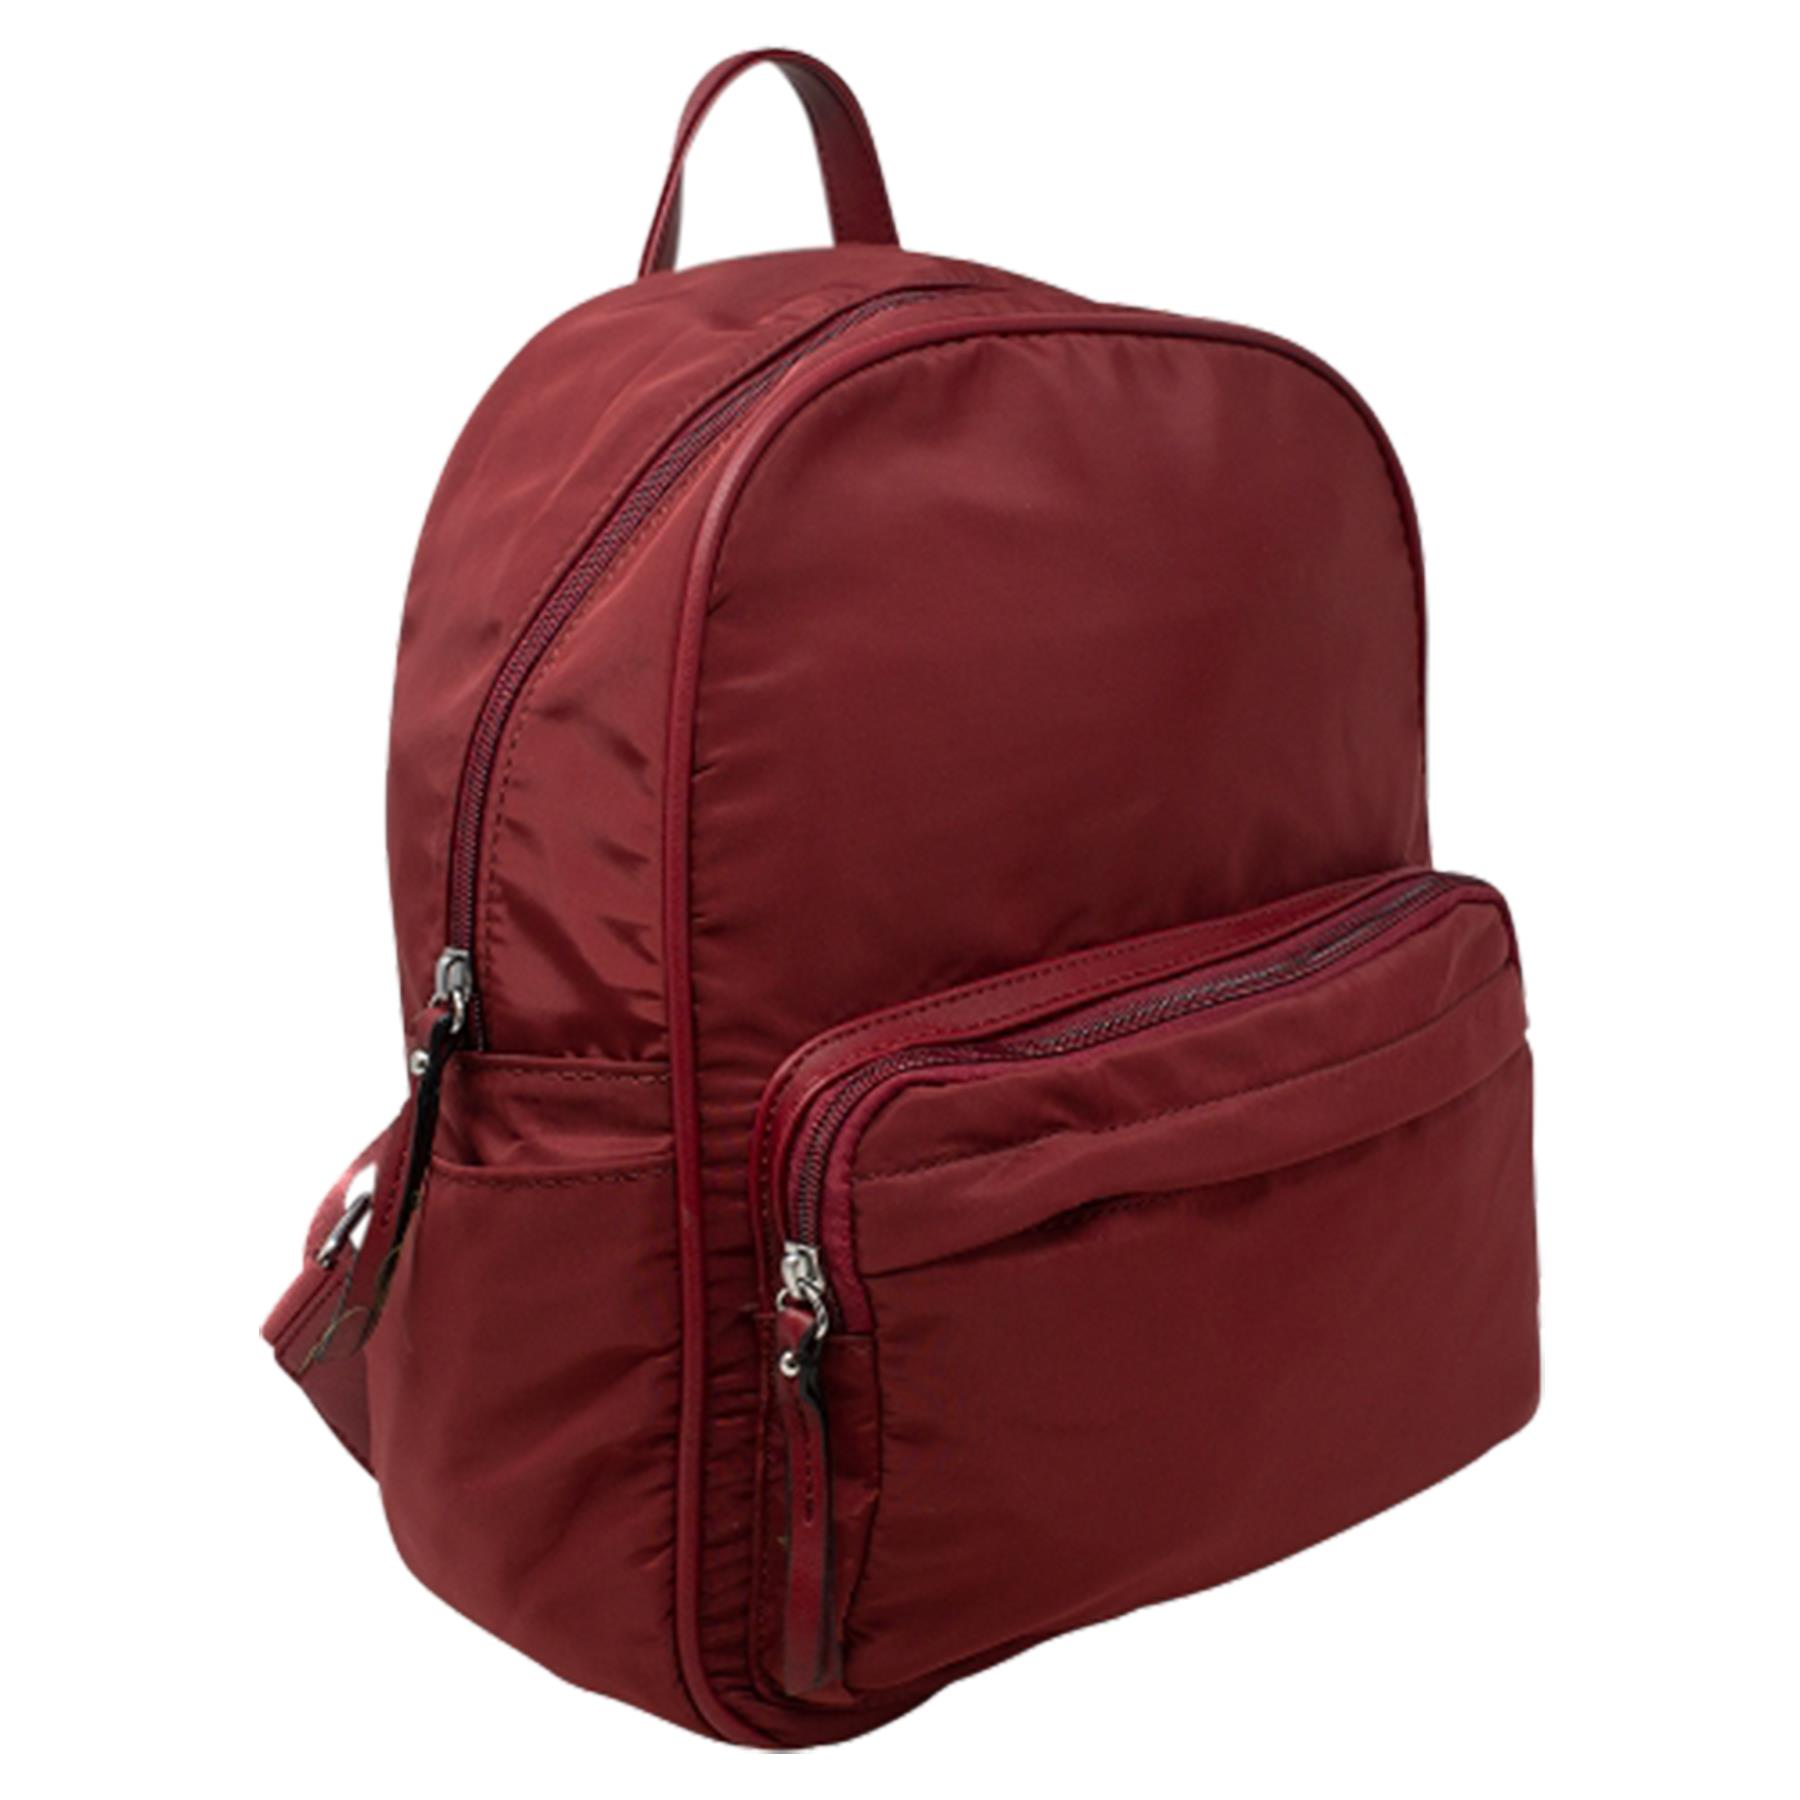 New-Unisex-Plain-Nylon-Showerproof-School-College-Backpack-Rucksack thumbnail 22